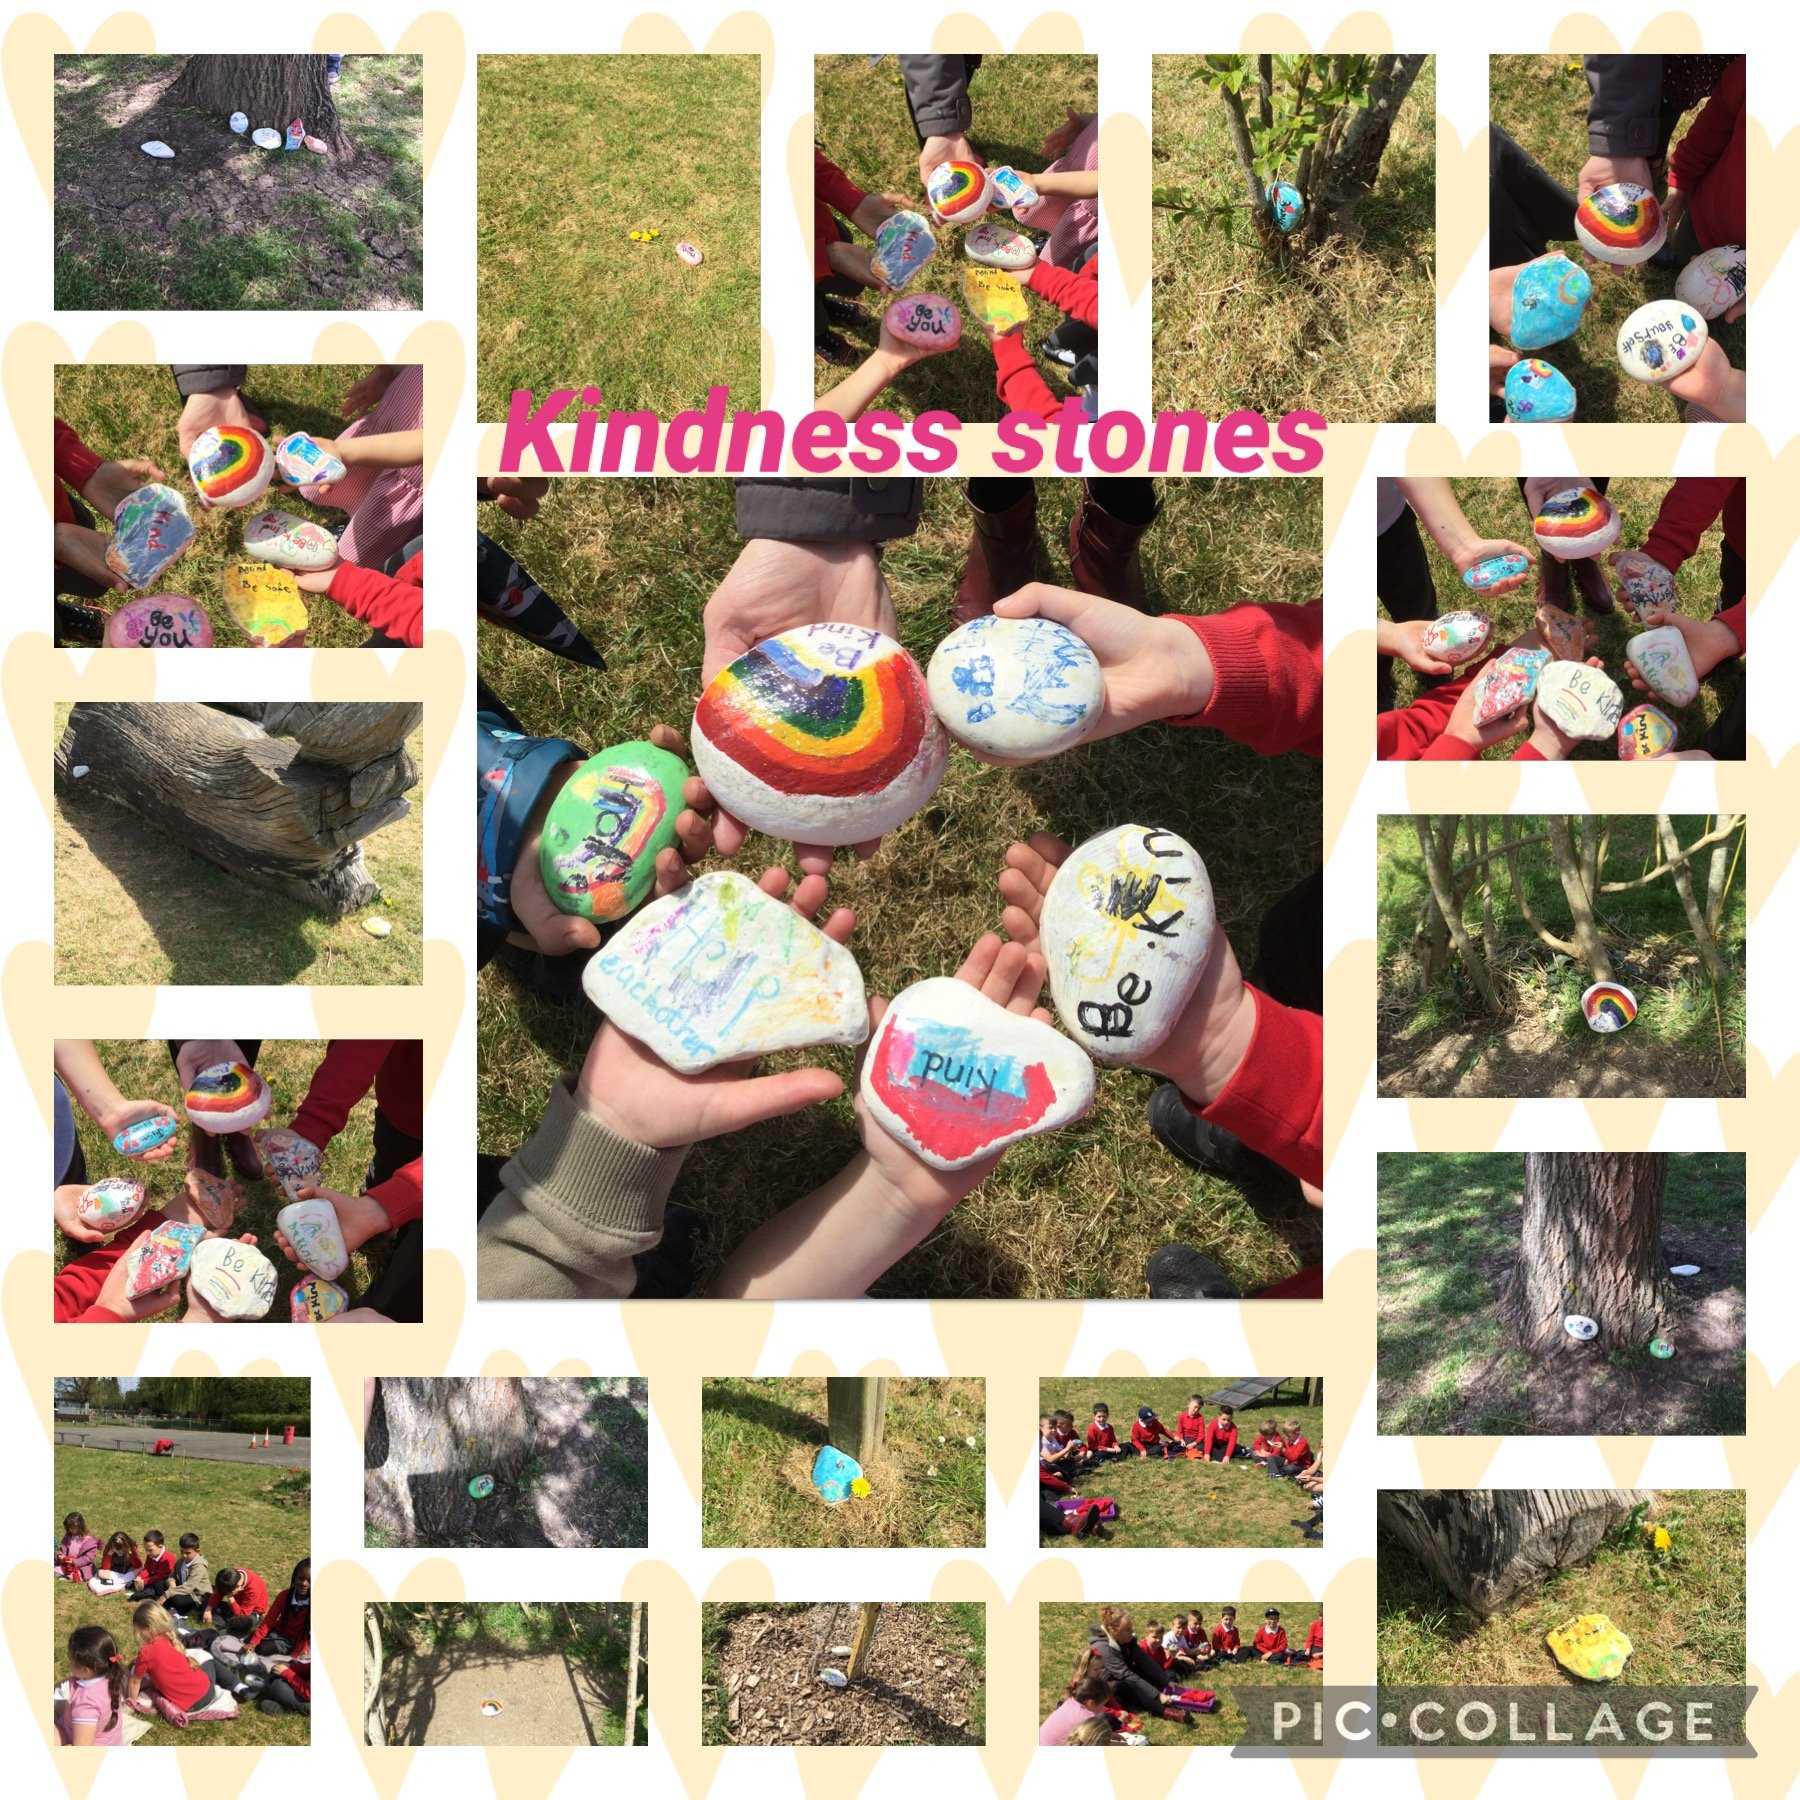 One of our values this term is Kindness. So we made Kindness stones!